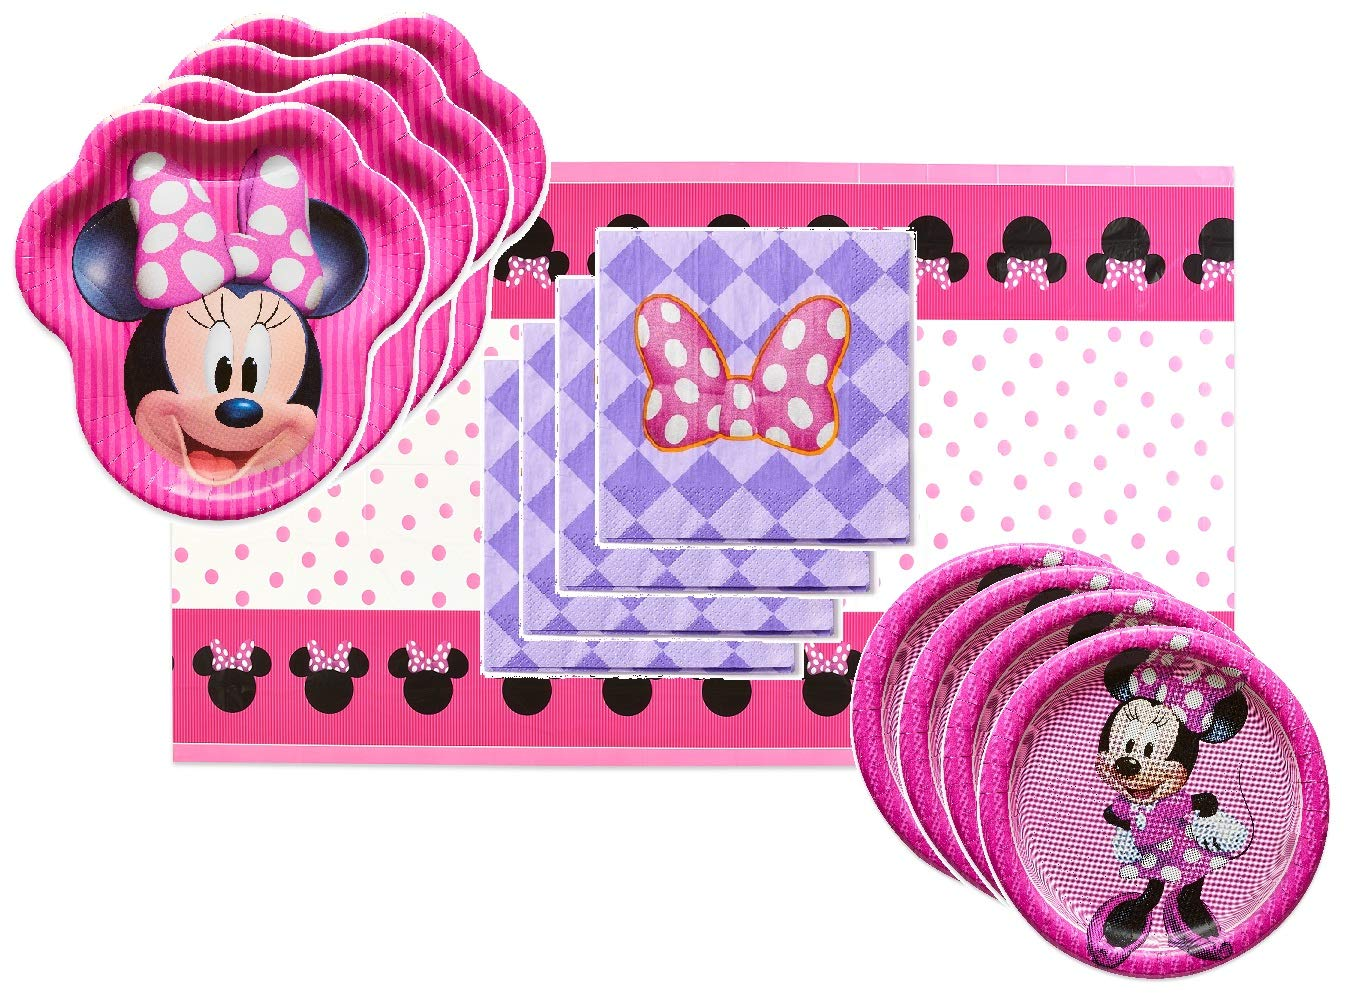 Bundle for 16 Mickey Mouse Forever Party Supplies Pack Serves 16 9 Plates and Luncheon Napkins with Birthday Candles